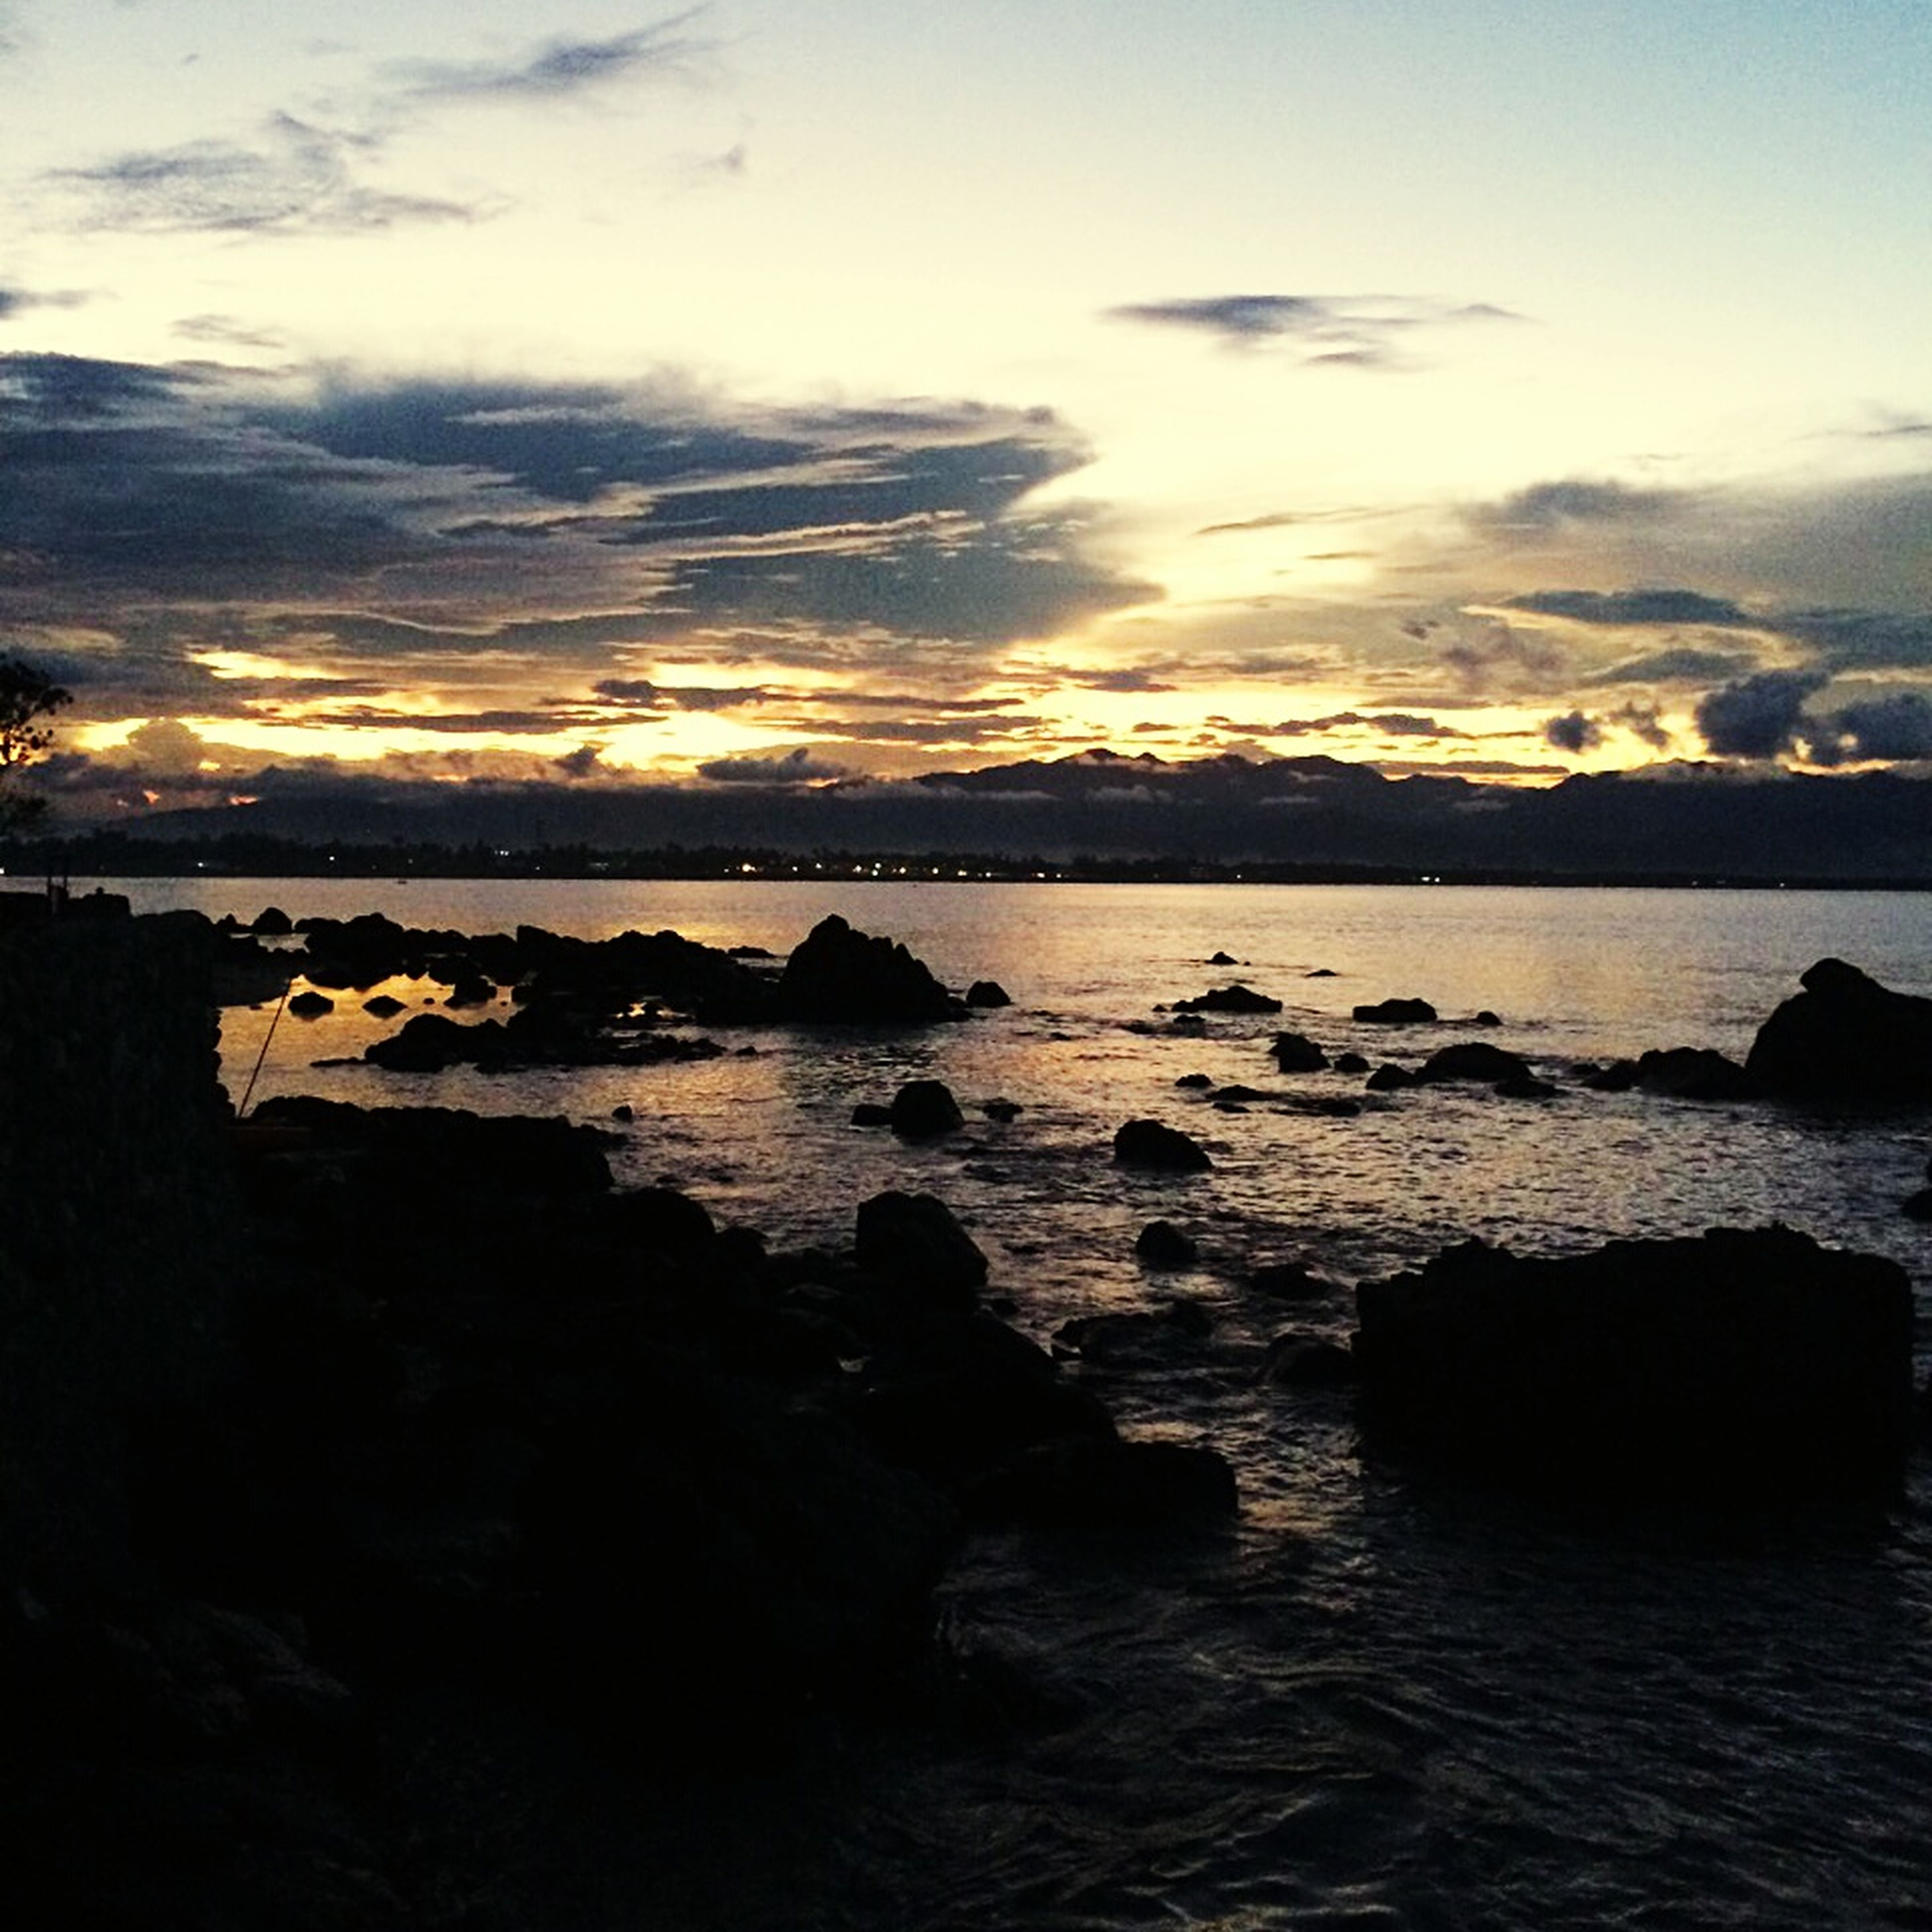 water, sunset, sky, tranquil scene, scenics, sea, tranquility, beauty in nature, cloud - sky, nature, idyllic, silhouette, cloud, rock - object, waterfront, reflection, rippled, cloudy, outdoors, calm